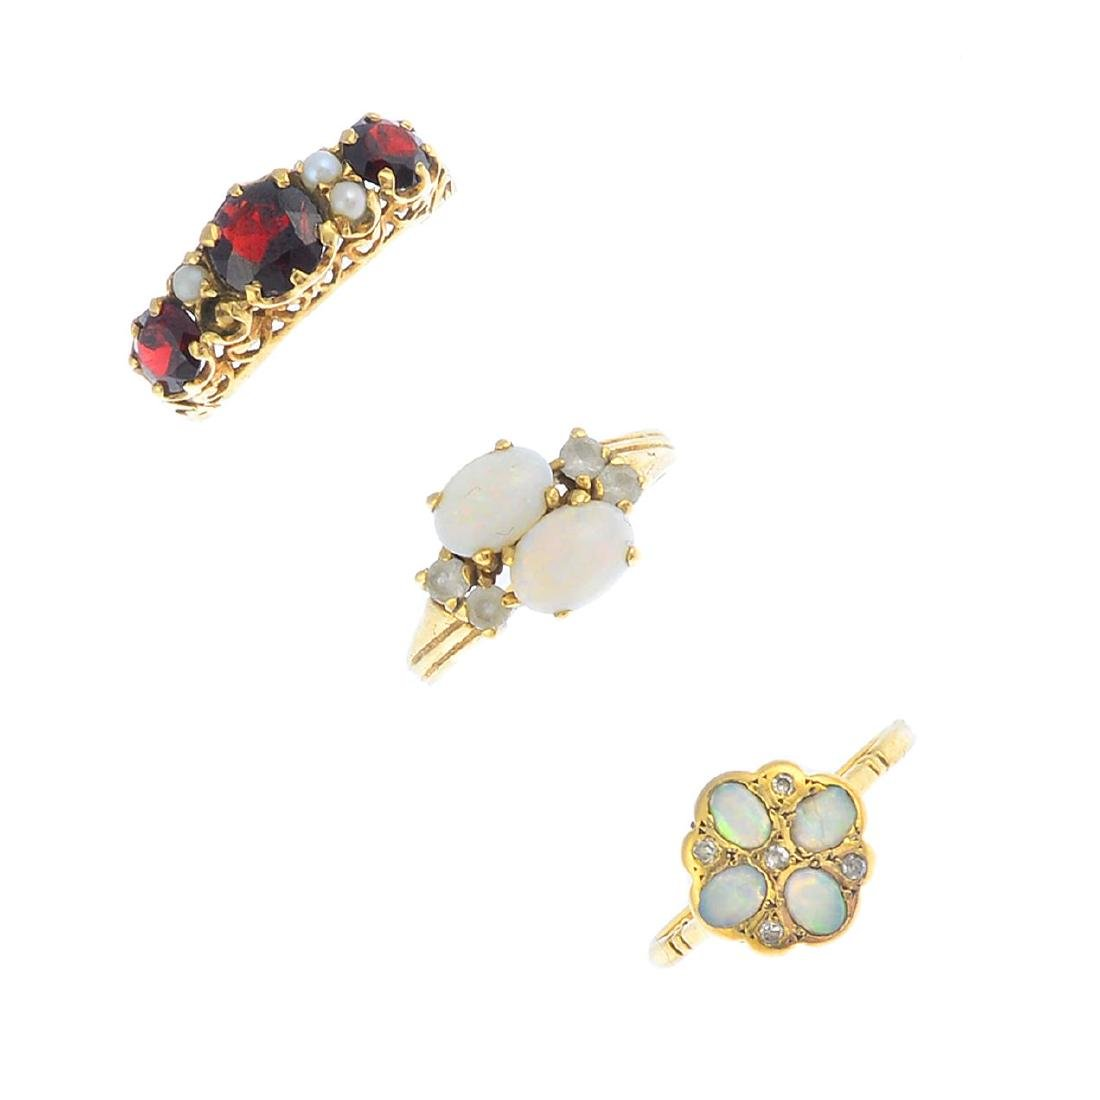 Six gem-set rings. To include a 9ct gold opal and